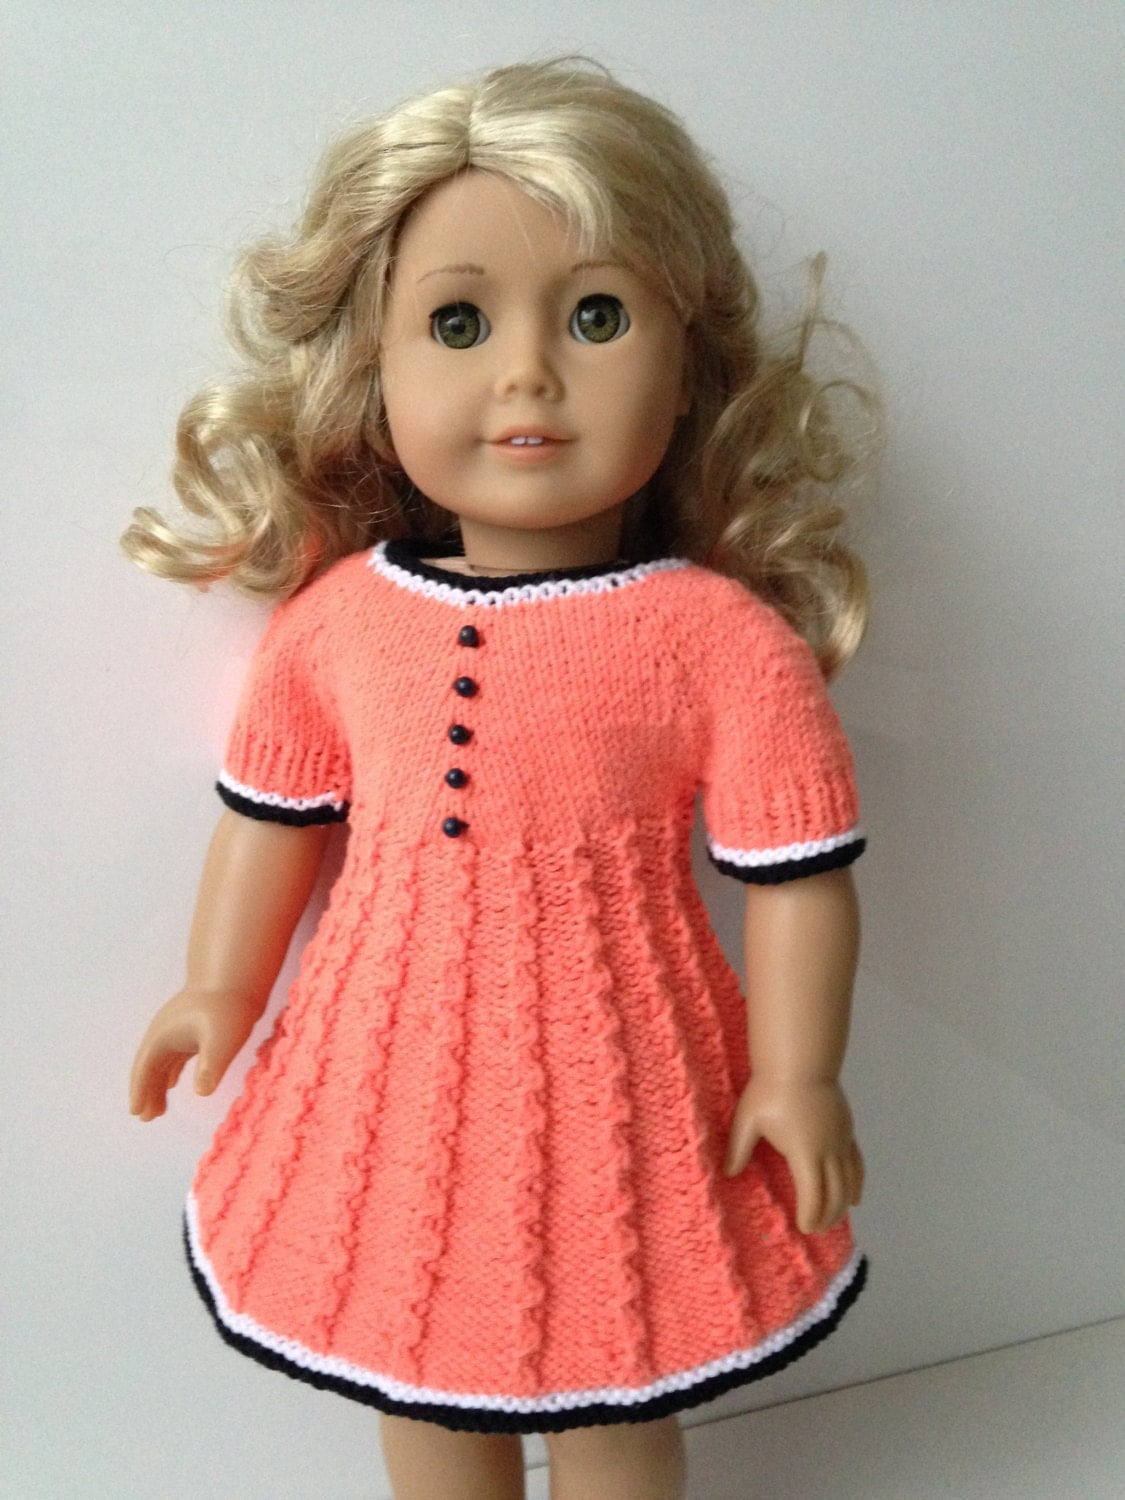 Knitting Pattern Doll Dress : Delia Knitting Pattern for 18 inch doll dress 061 by KNITnPLAY